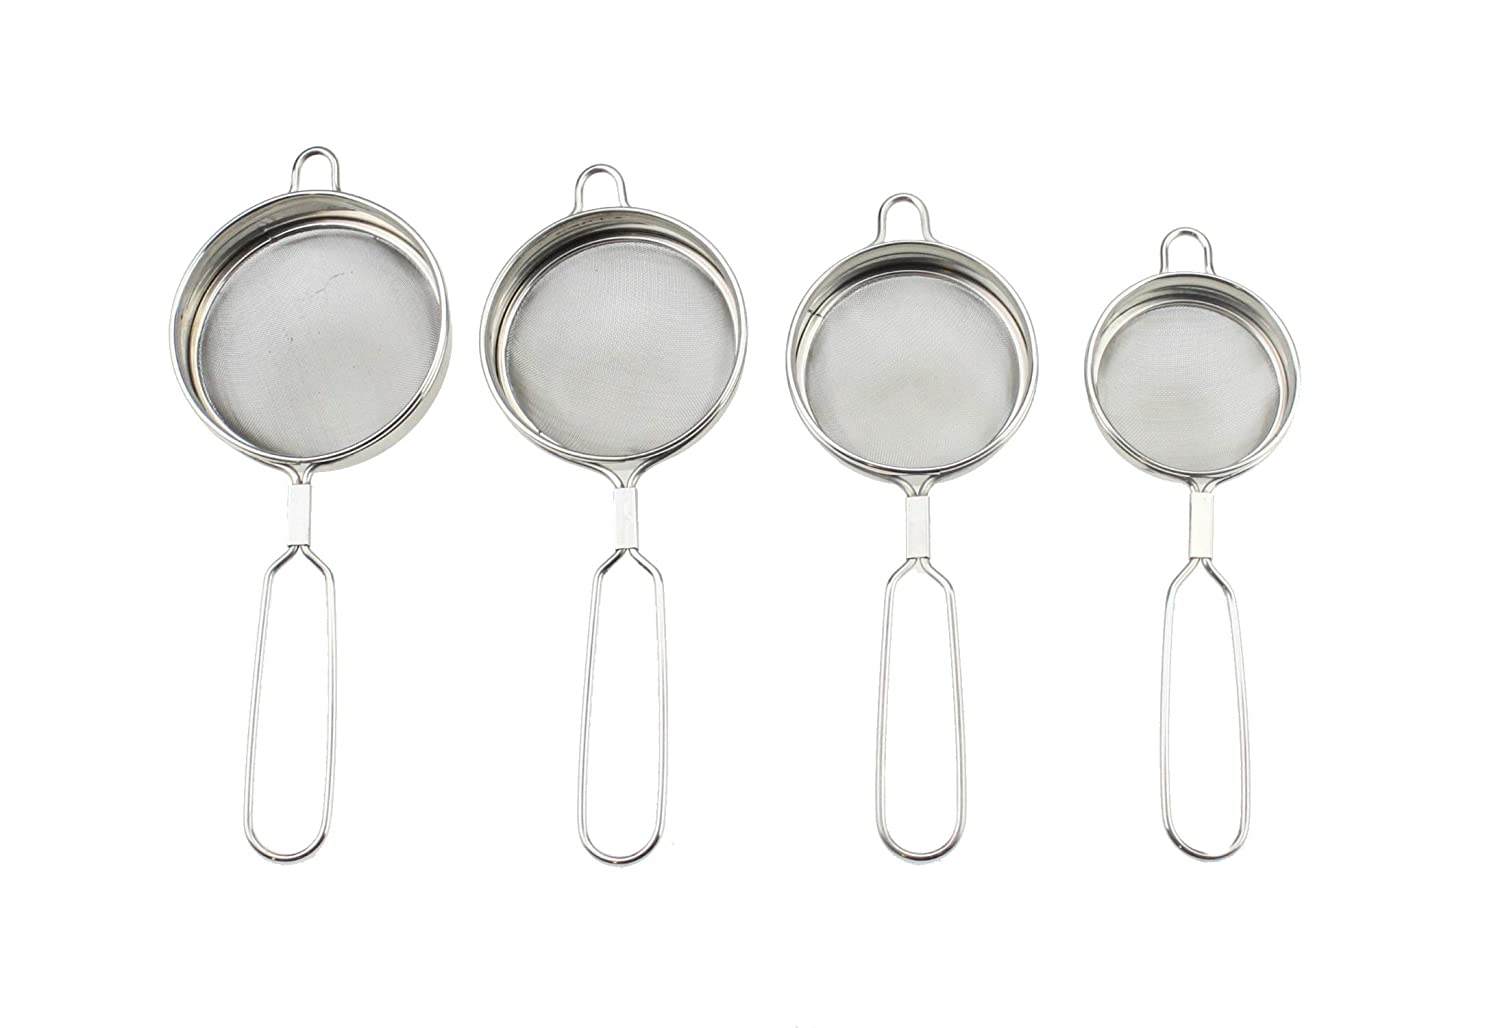 Fine Mesh Tea Sieve Strainer Set of 4 Stainless Steel Mini Small Tea Strainer Sieve Colander Sifter with Handle Ideal for Straining Tea, Sieving Flour, Jam Strainer Washing Fresh Herbs GK Global Kitchen